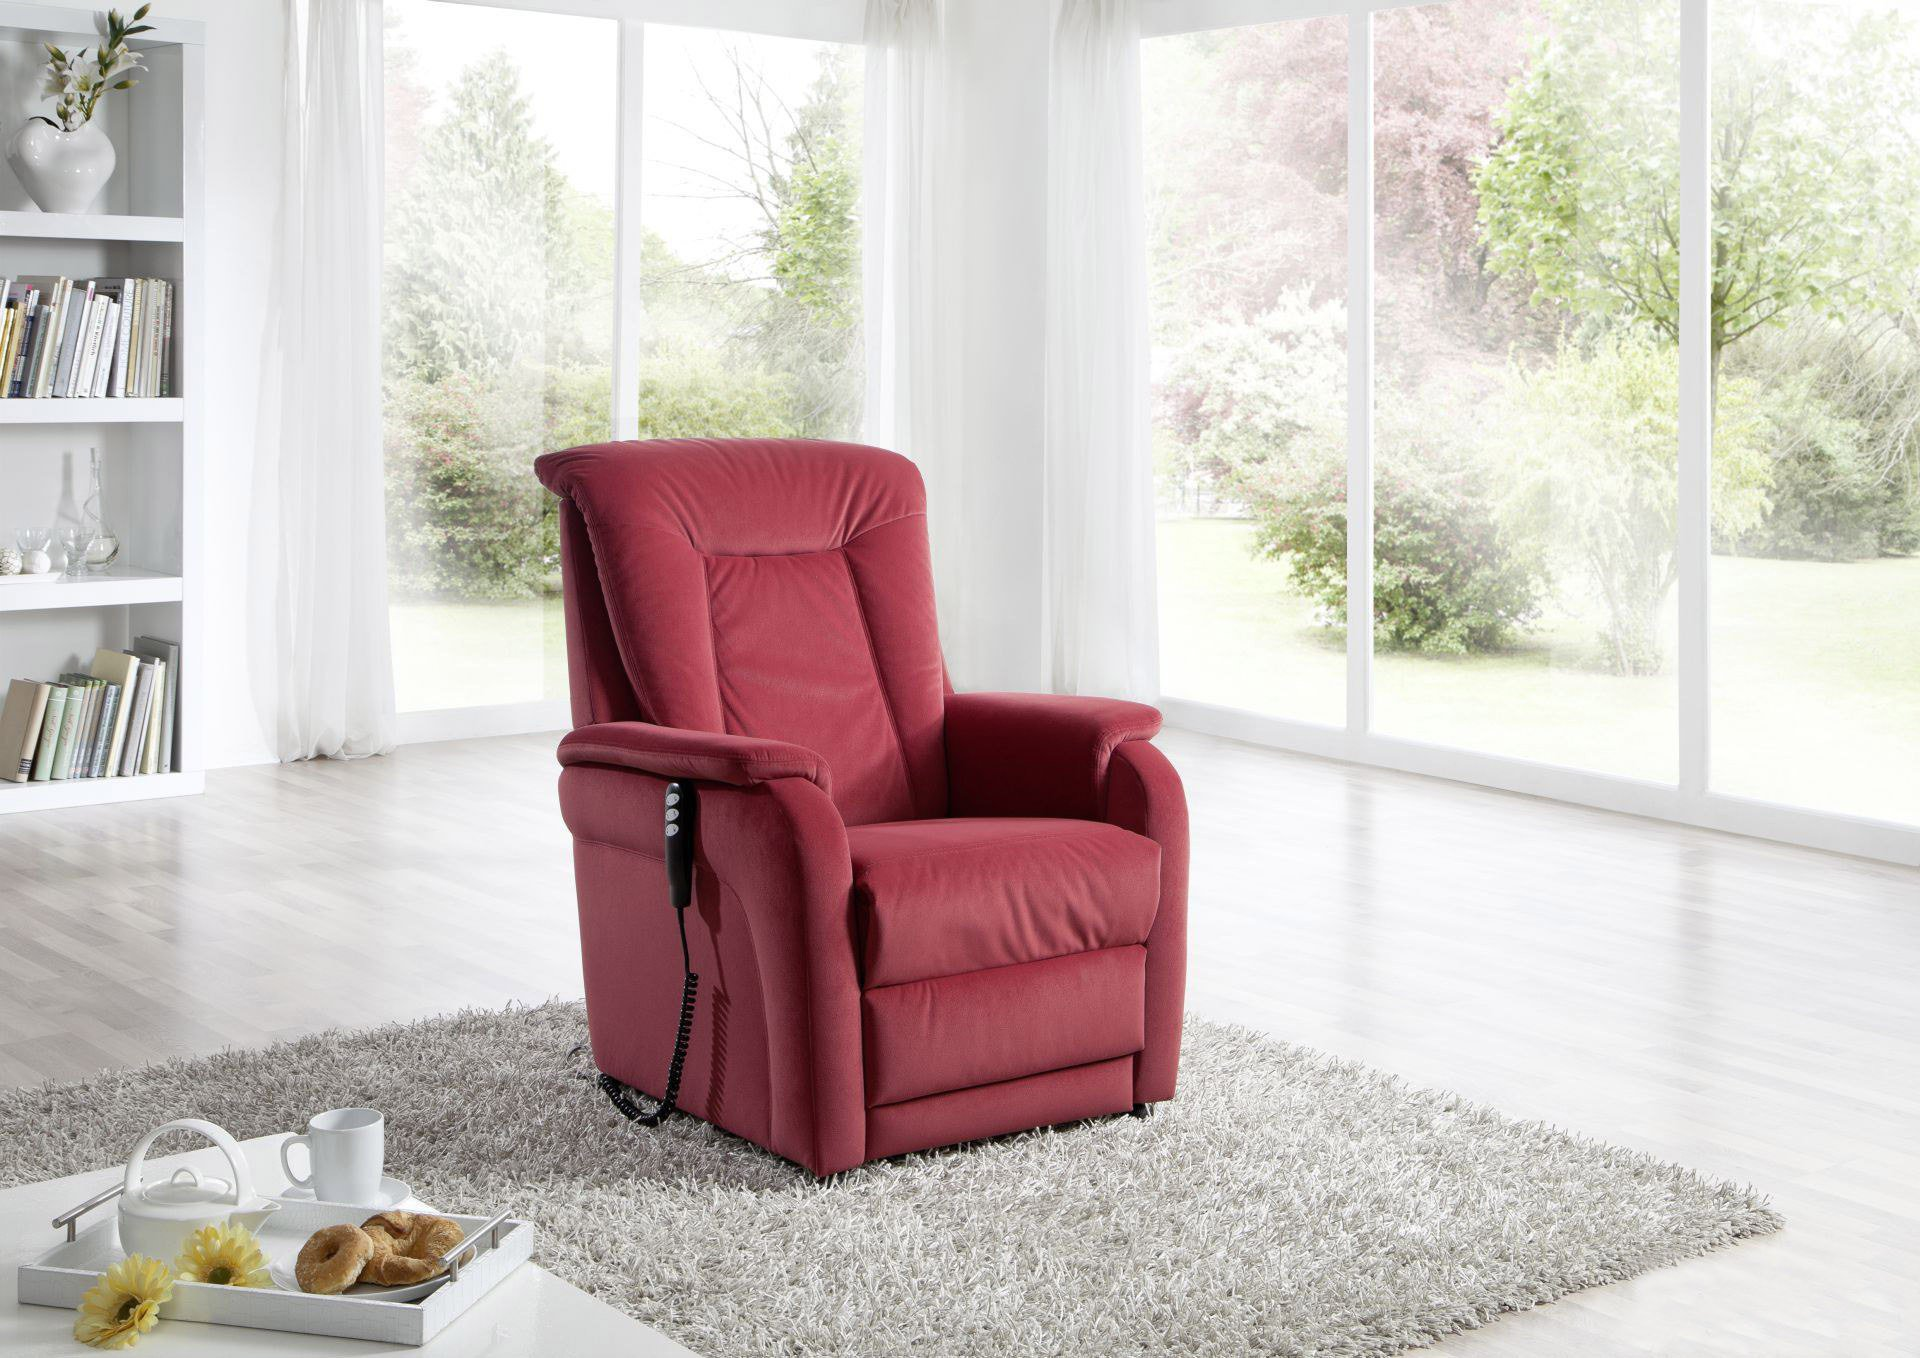 Arco Sessel 8301 Relax Von Arco Relaxsessel Bordeaux